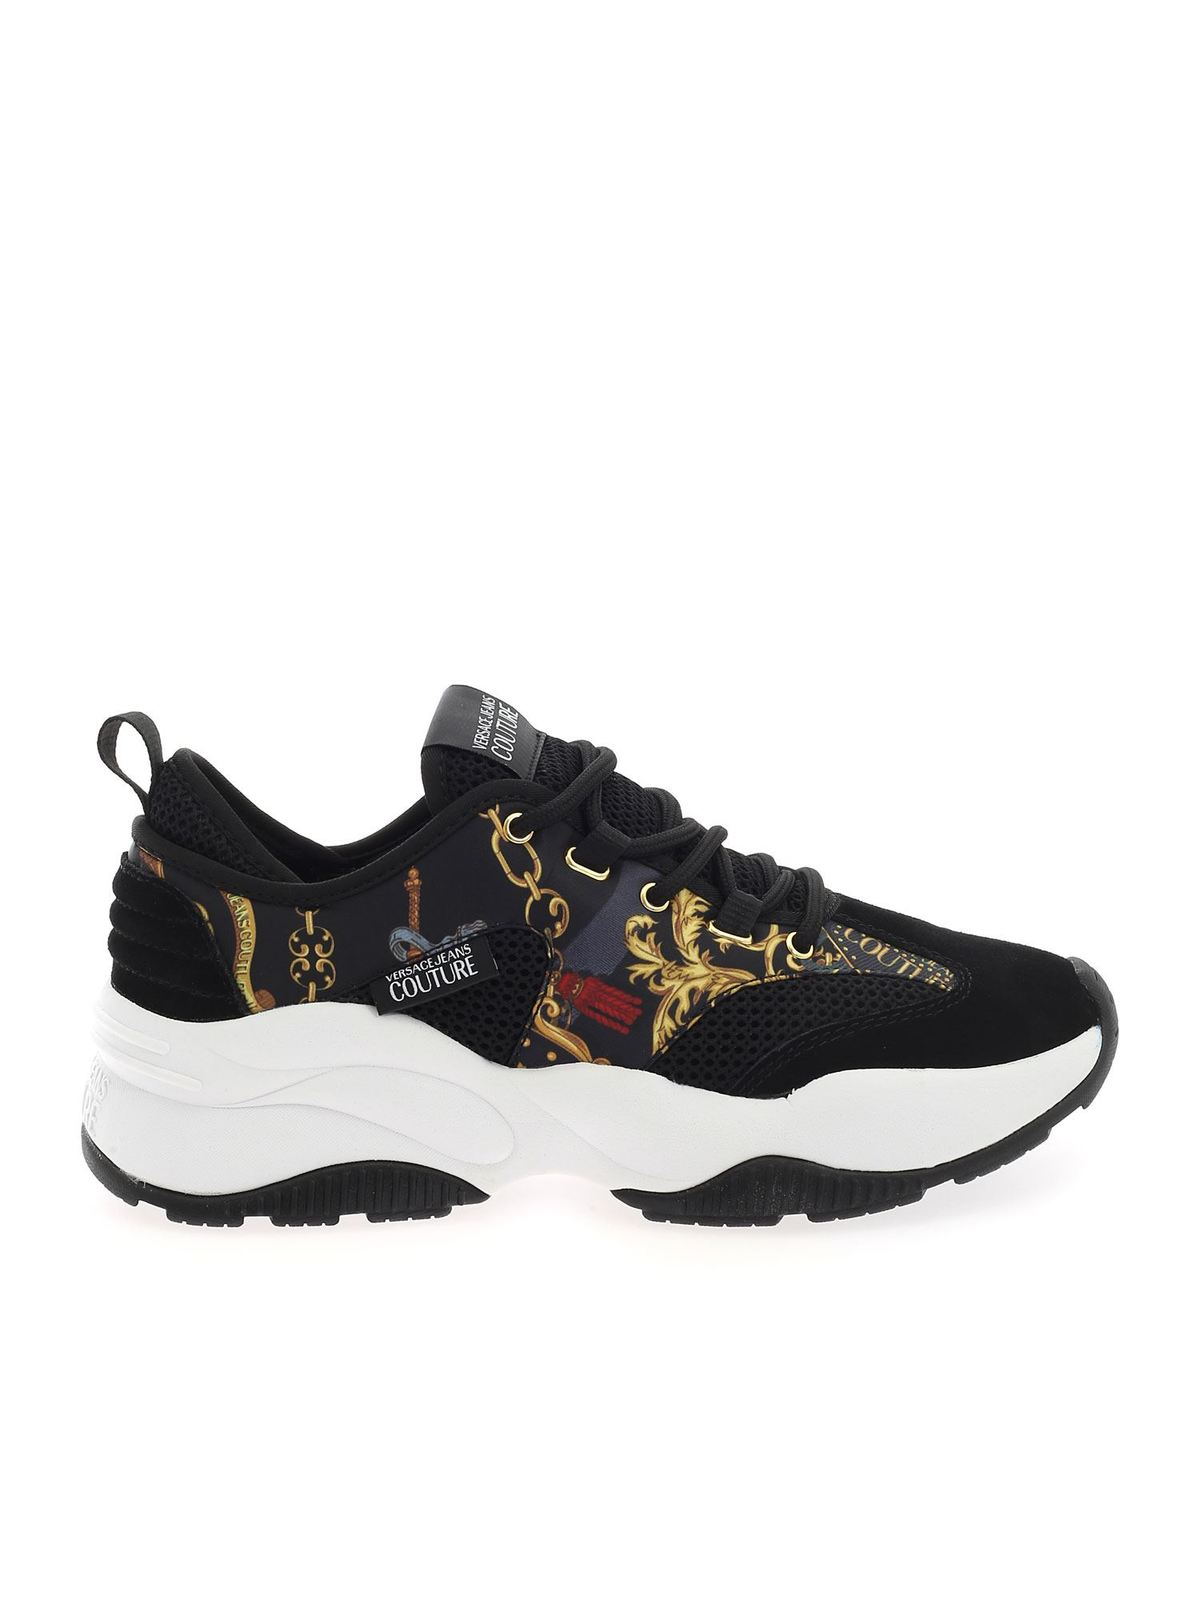 VERSACE JEANS COUTURE BAROQUE LOGO PRINT SNEAKERS IN BLACK